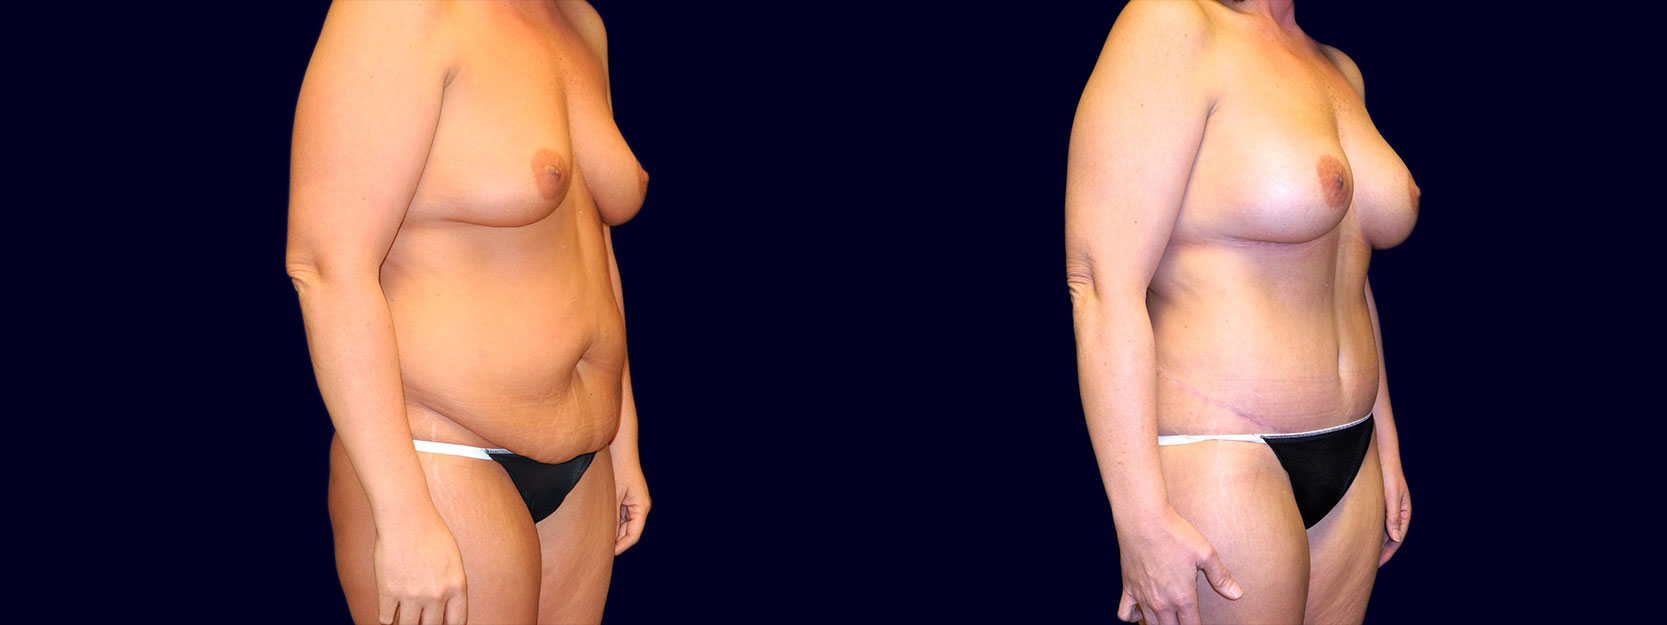 Right 3/4 View - Breast Augmentation & Tummy Tuck After Weight Loss